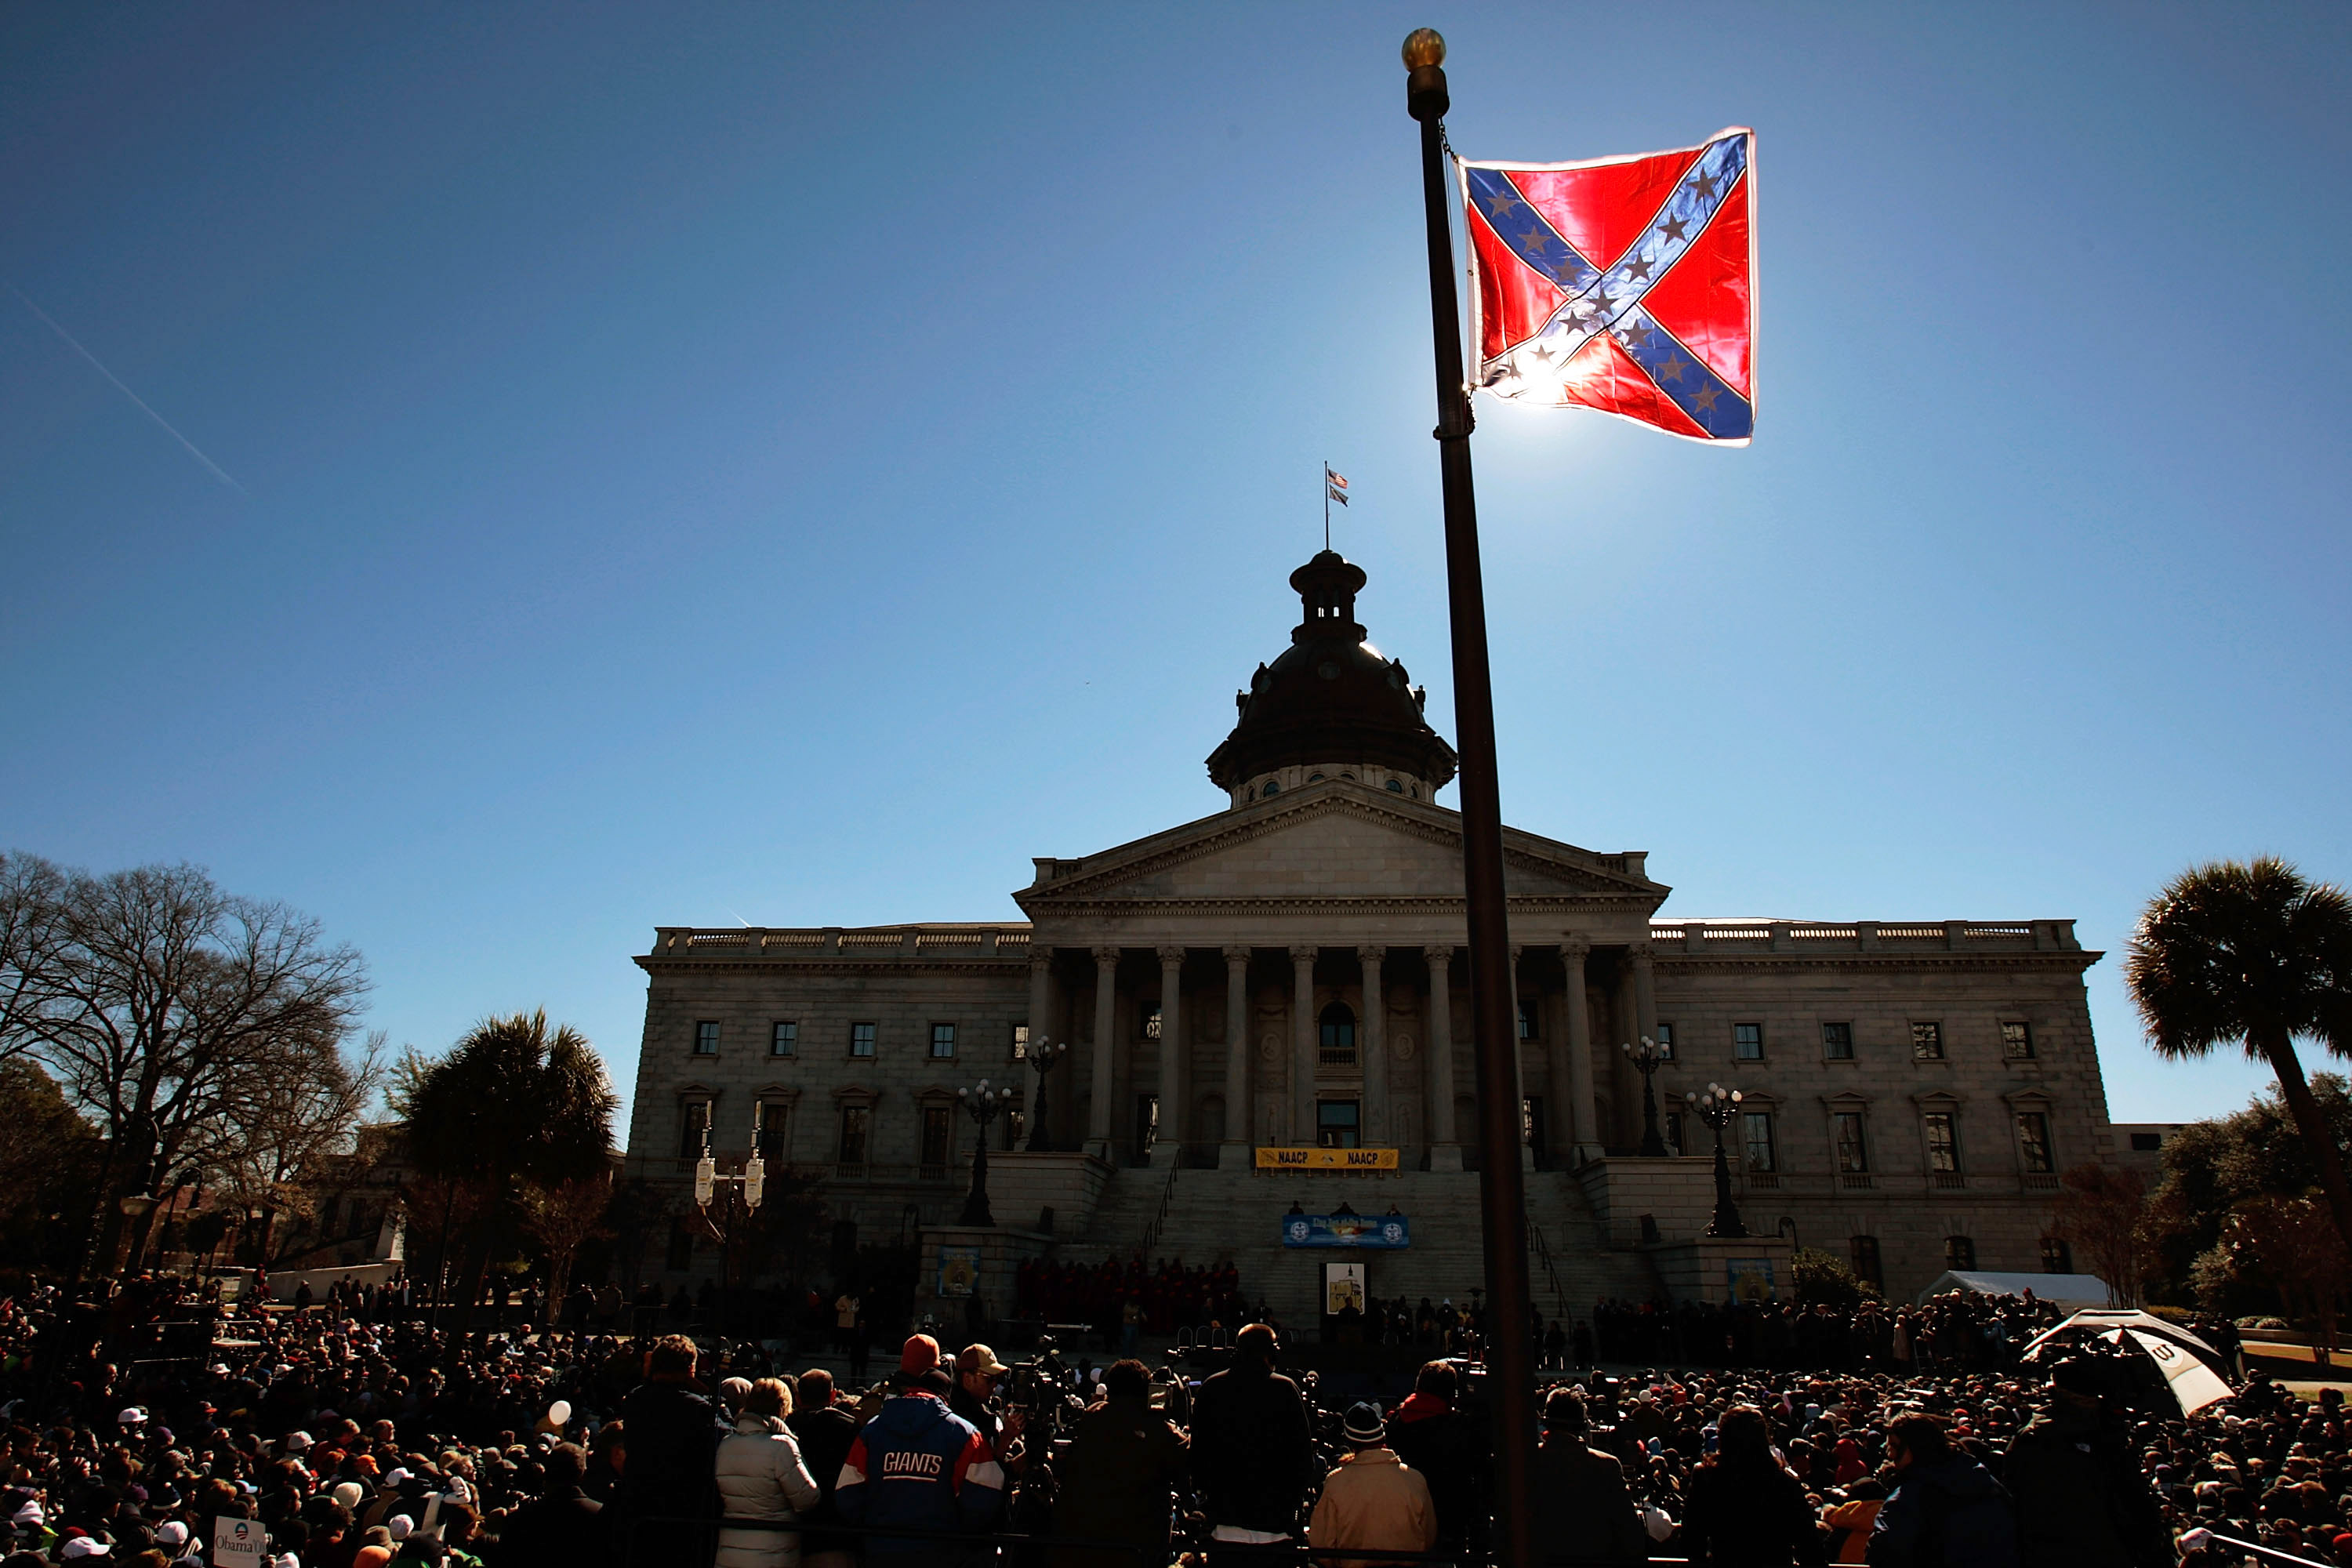 6 arguments for the confederate flag the brilliant ways to shut chris hondrosgetty images newsgetty images the debate over the confederate flag biocorpaavc